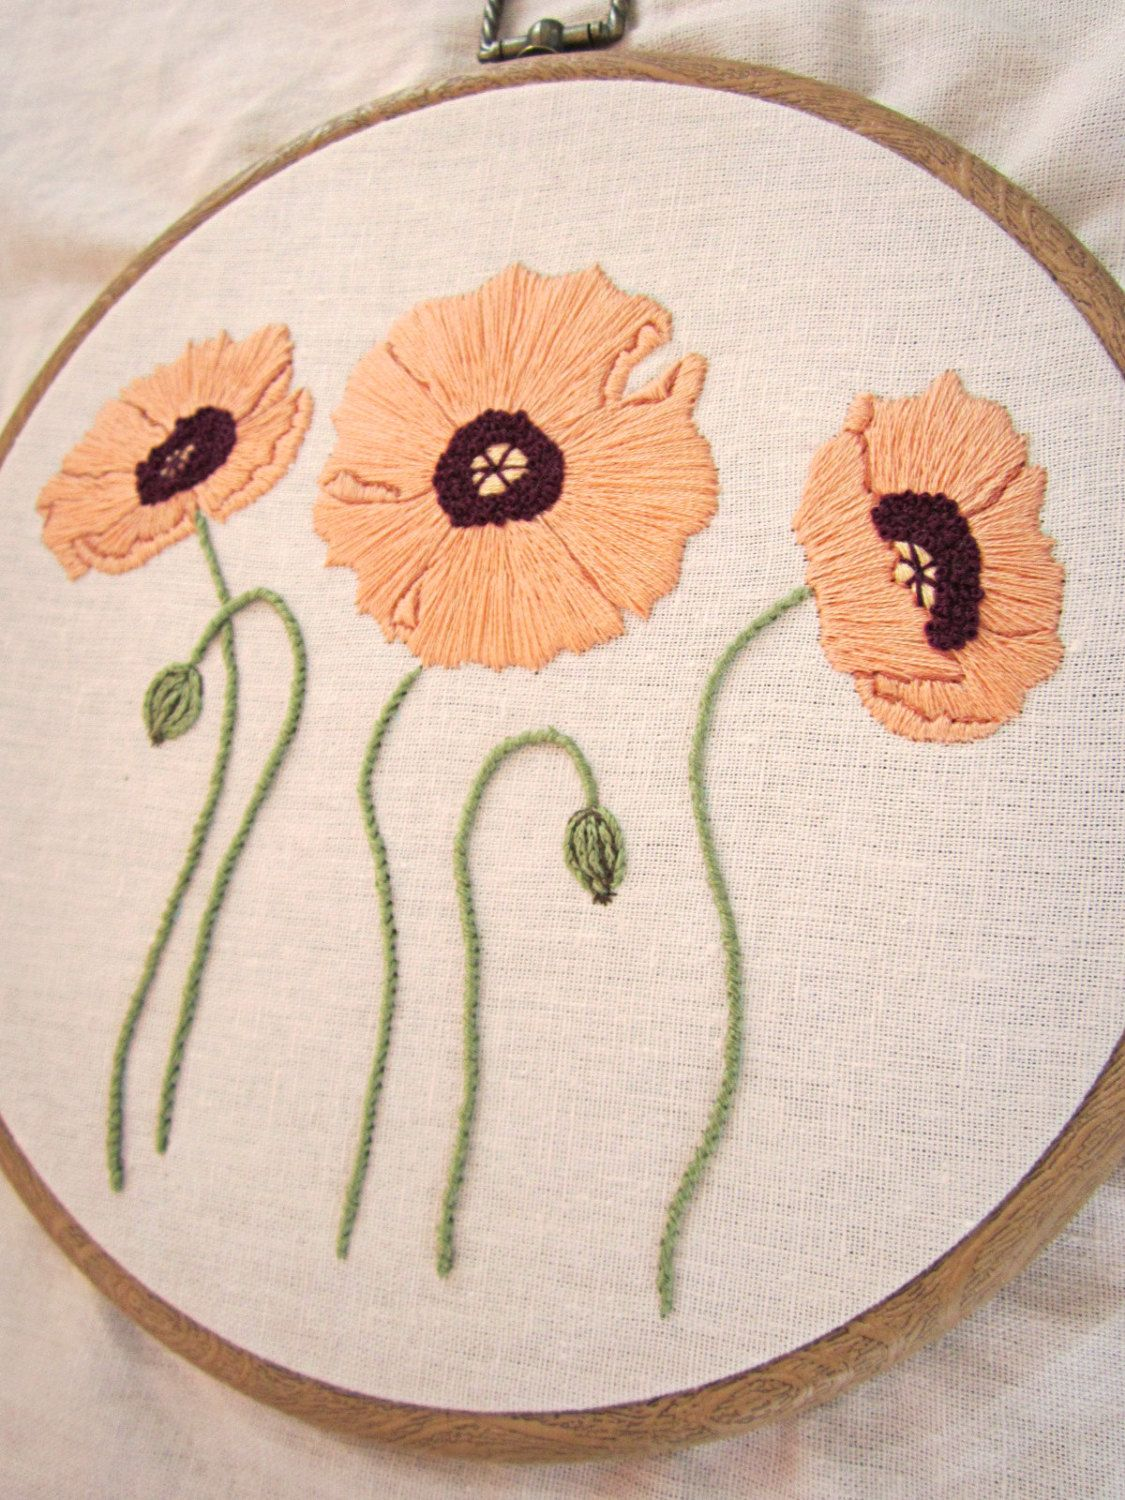 Floral hand embroidery design easy pdf by stitchfloraldesigns